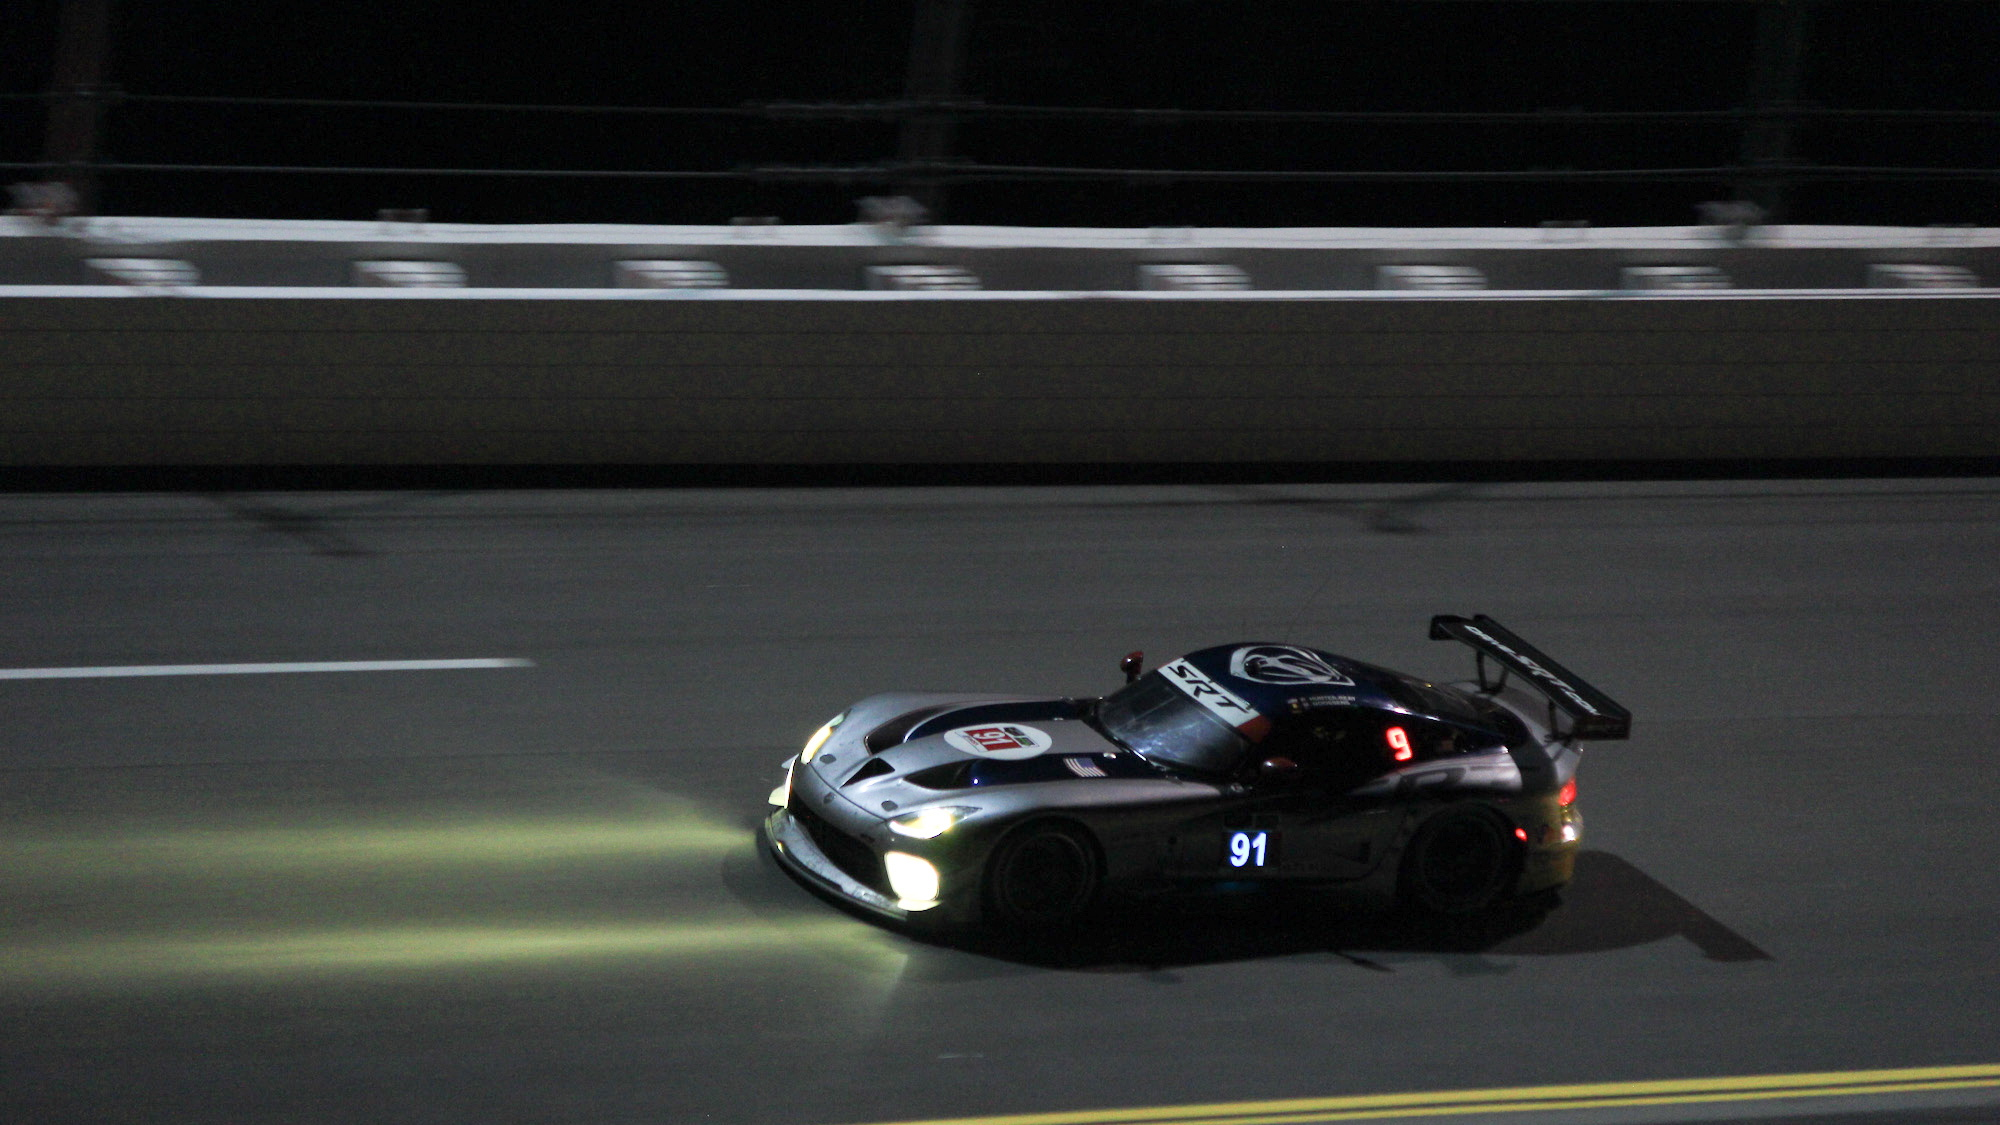 The 2014 Rolex 24 at Daytona at night